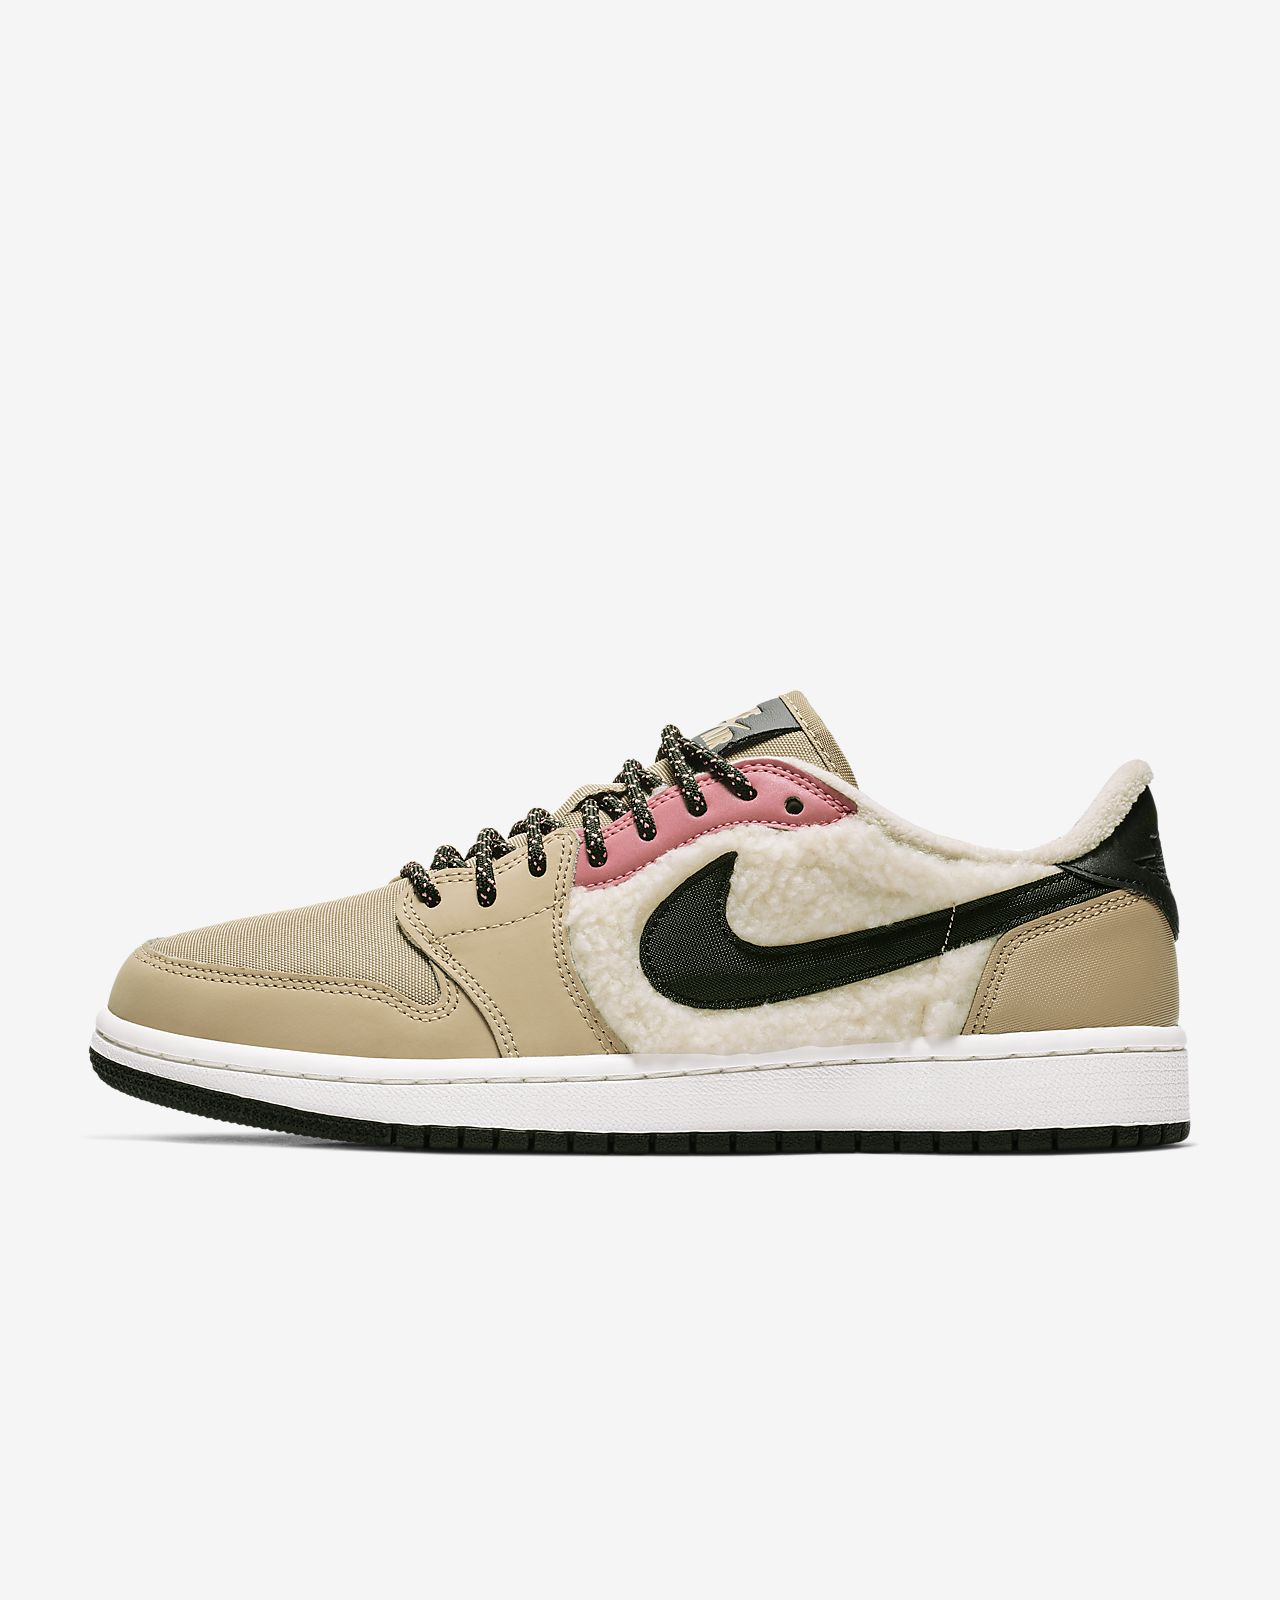 Air Jordan 1 Retro Low OG Women's Shoe